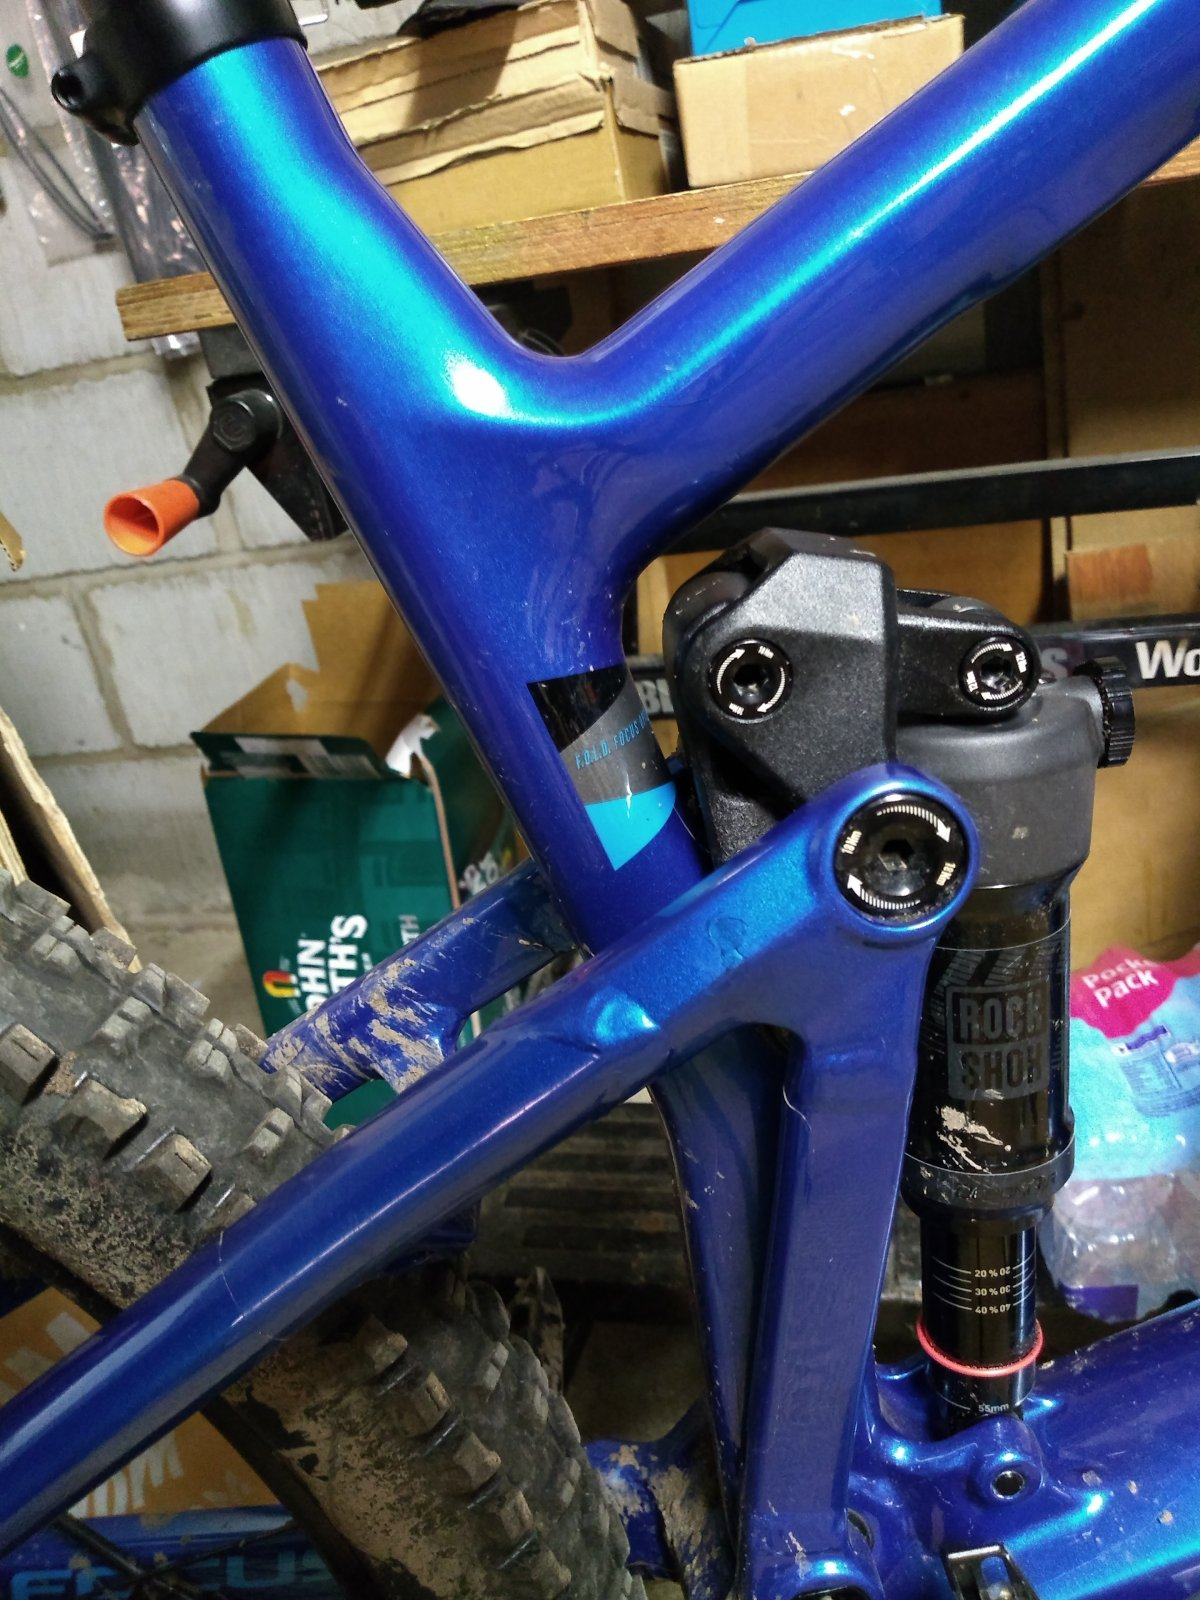 paint-chip-seat-stay-1-jpg.12340